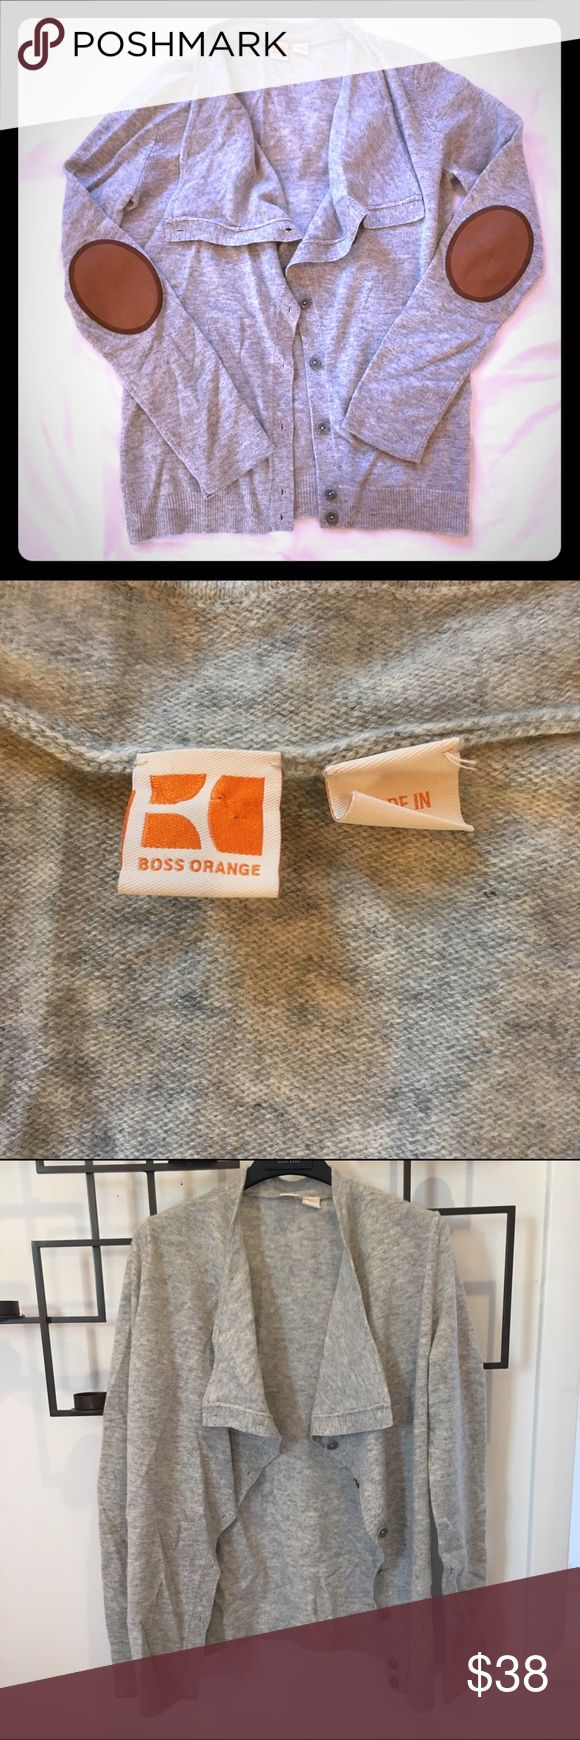 Hugo Boss women's Orange Label sweater/cardigan This is a Hugo Boss women's orange label piece, which is one of my favs. It's a lightweight grey sweater cardigan with gorgeous brown elbow patches. It's been worn once or twice, so it's in perfect condition. Please excuse the wrinkles, it's been sitting in a box for a while. This sweater is perfect for this time of year and super relevant to the menswear trends of the season . It's a size S. BOSS ORANGE Sweaters Cardigans